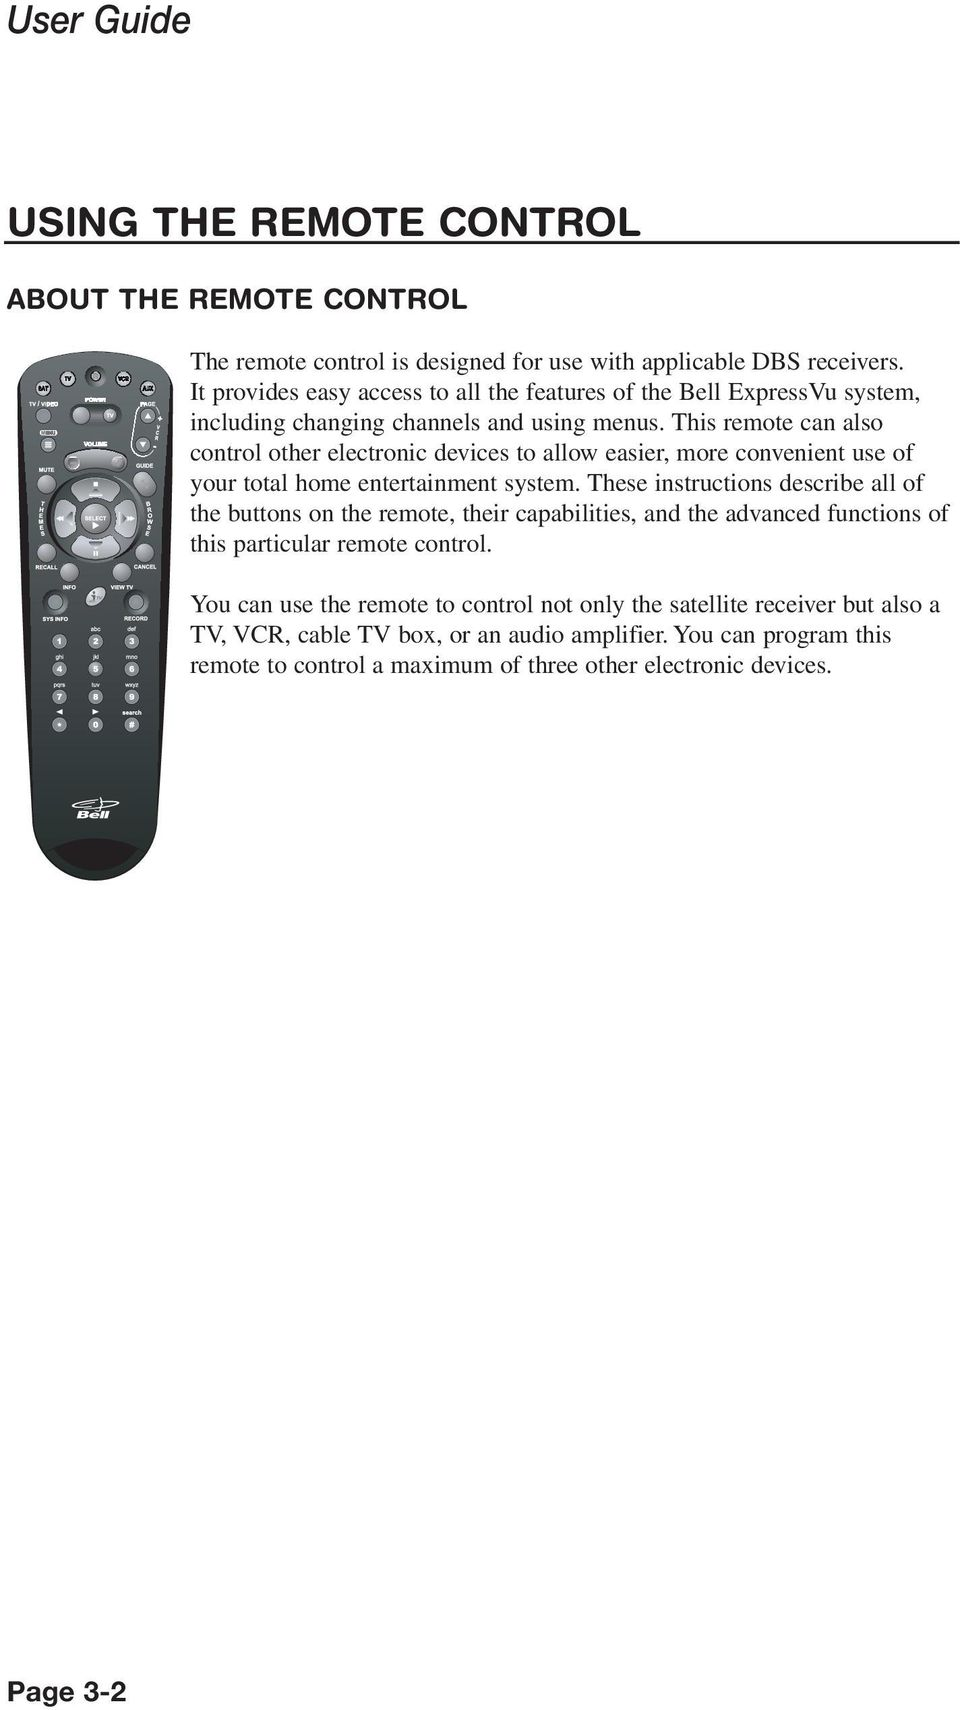 This remote can also control other electronic devices to allow easier, more convenient use of your total home entertainment system.